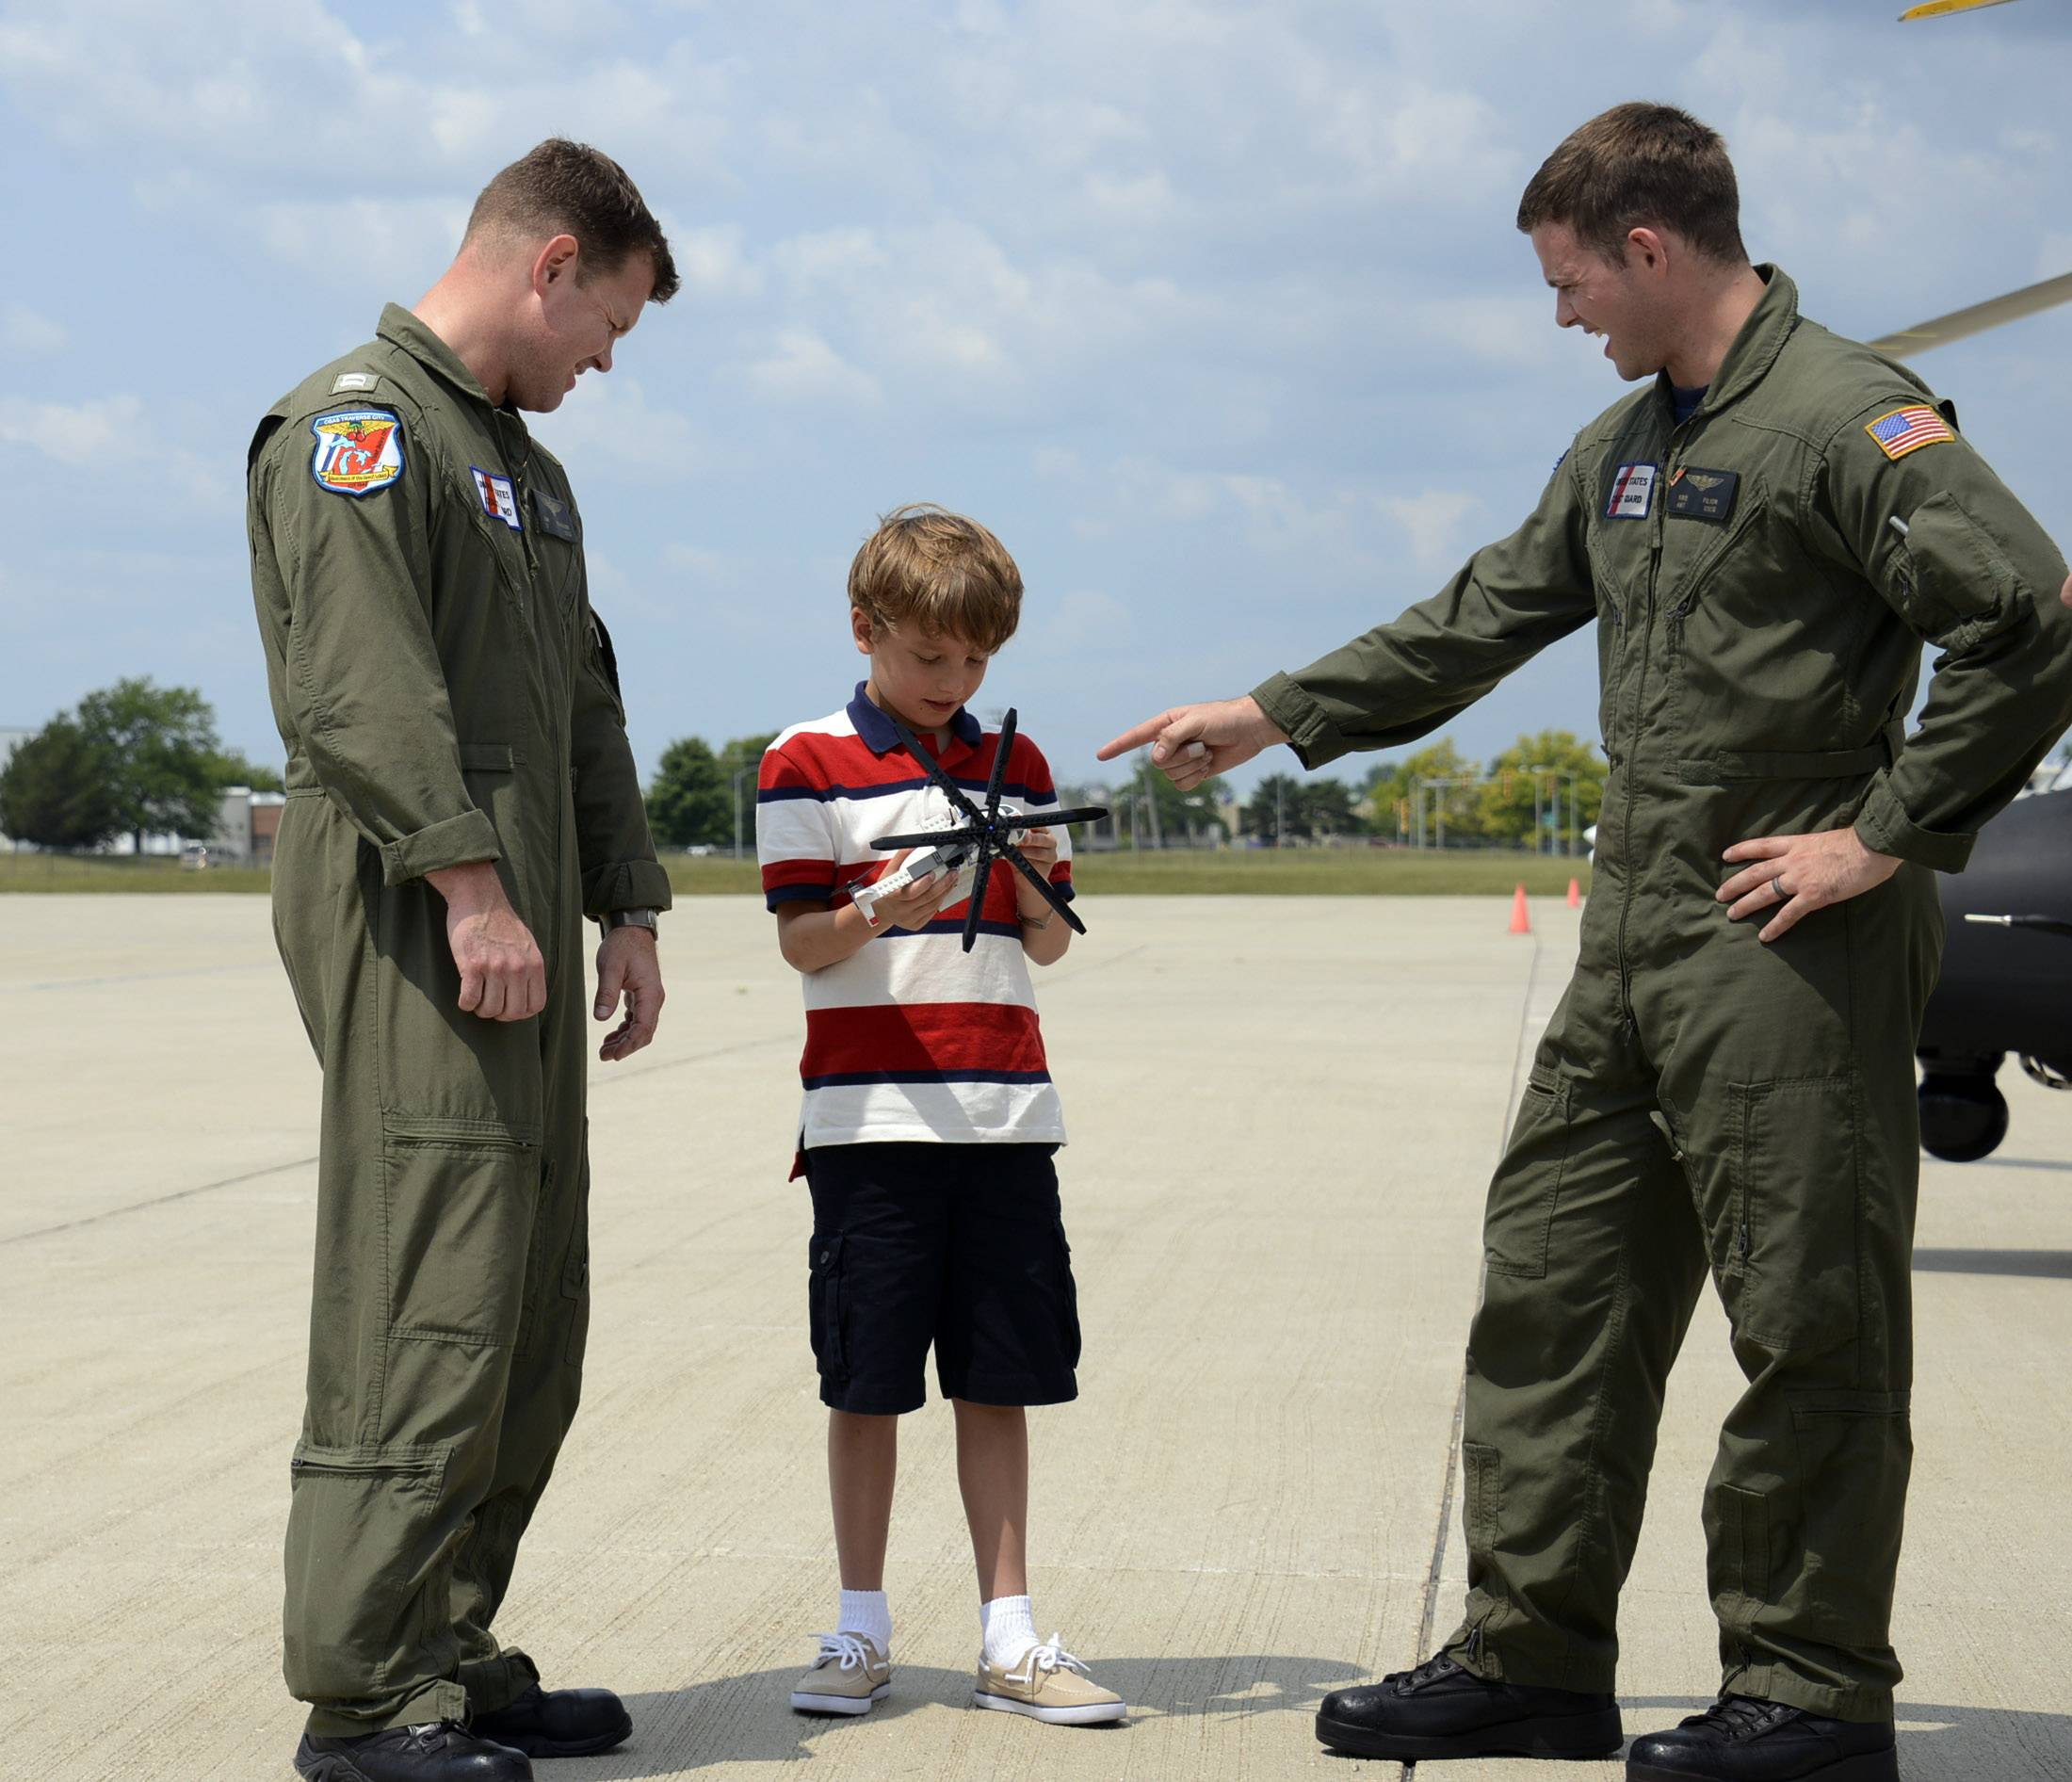 Tommy Alter, 9, of Highland Park is joined by Coast Guard Lt. Dan Schrader and Kris Filion, the flight mechanic, at the Wheeling airport Tuesday.